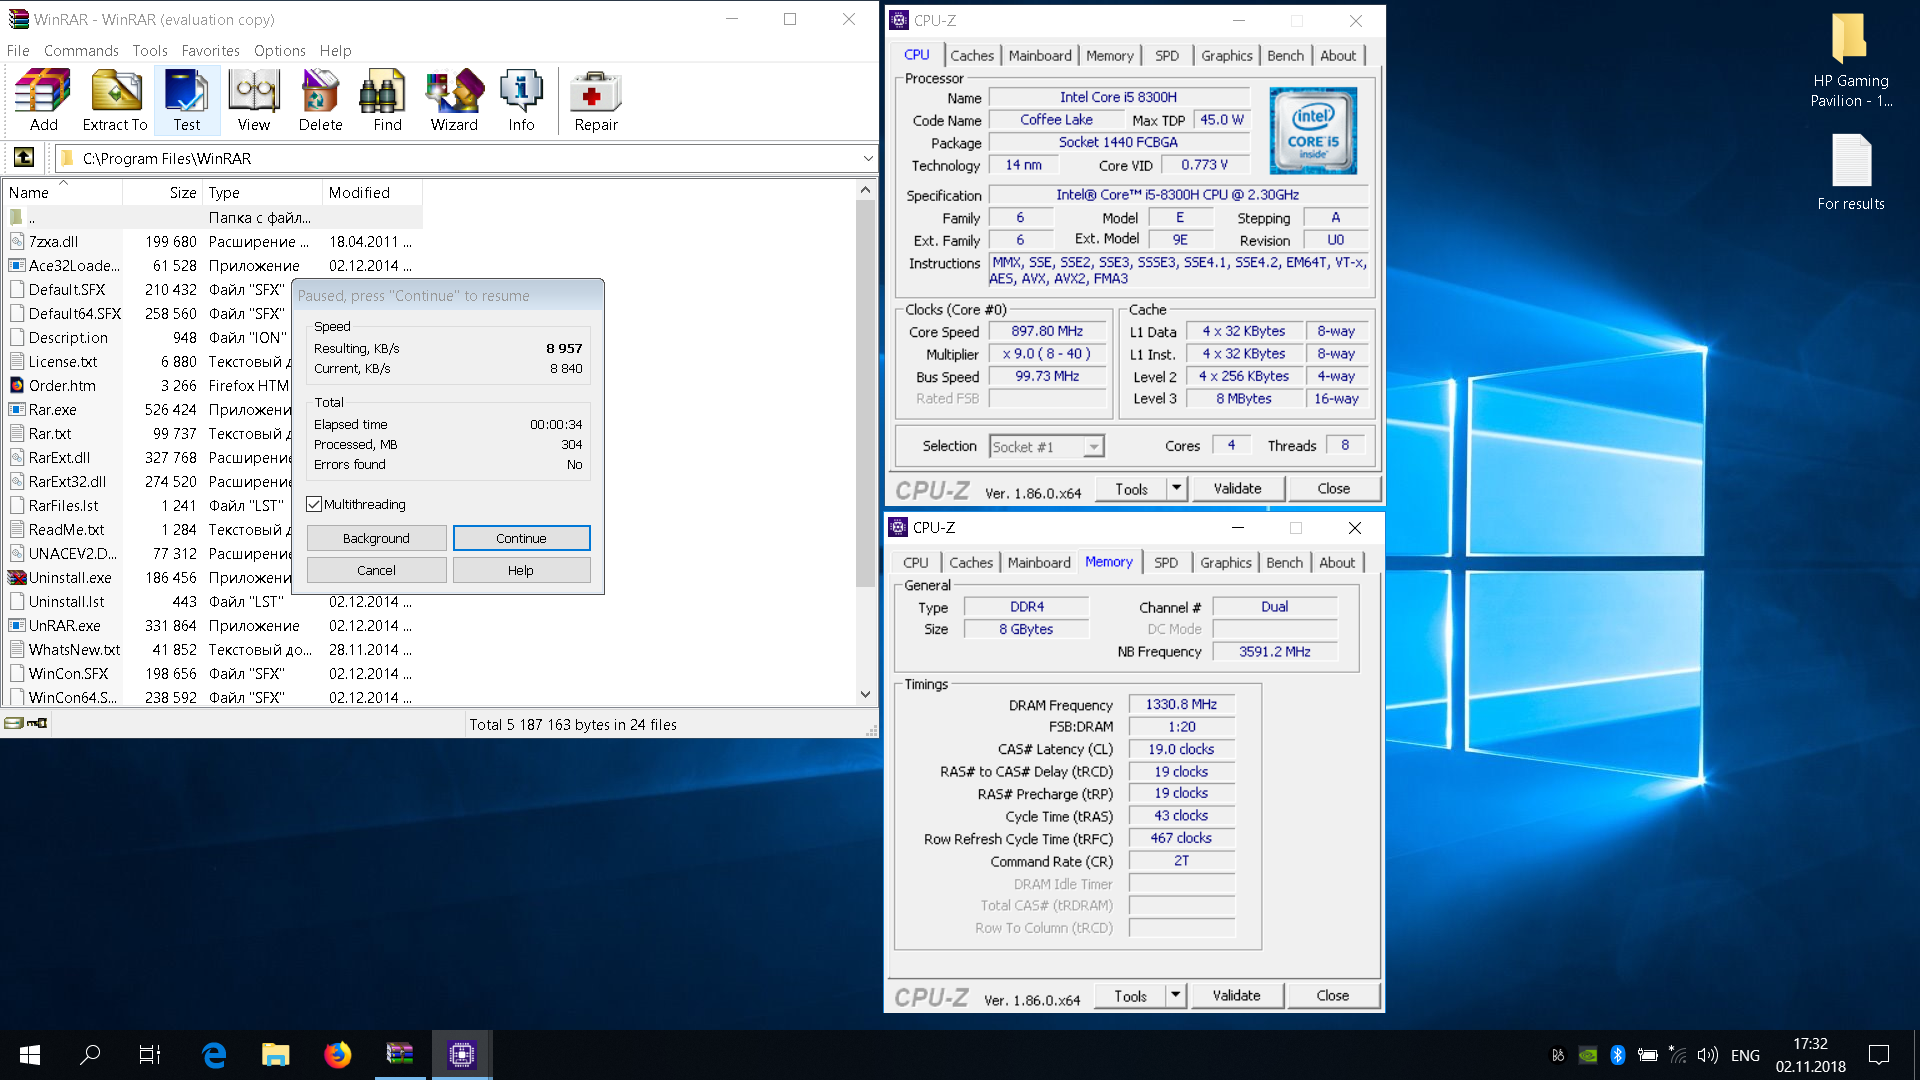 TyphooNick`s WinRAR score: 8957 KB/s with a Core i5 8300H